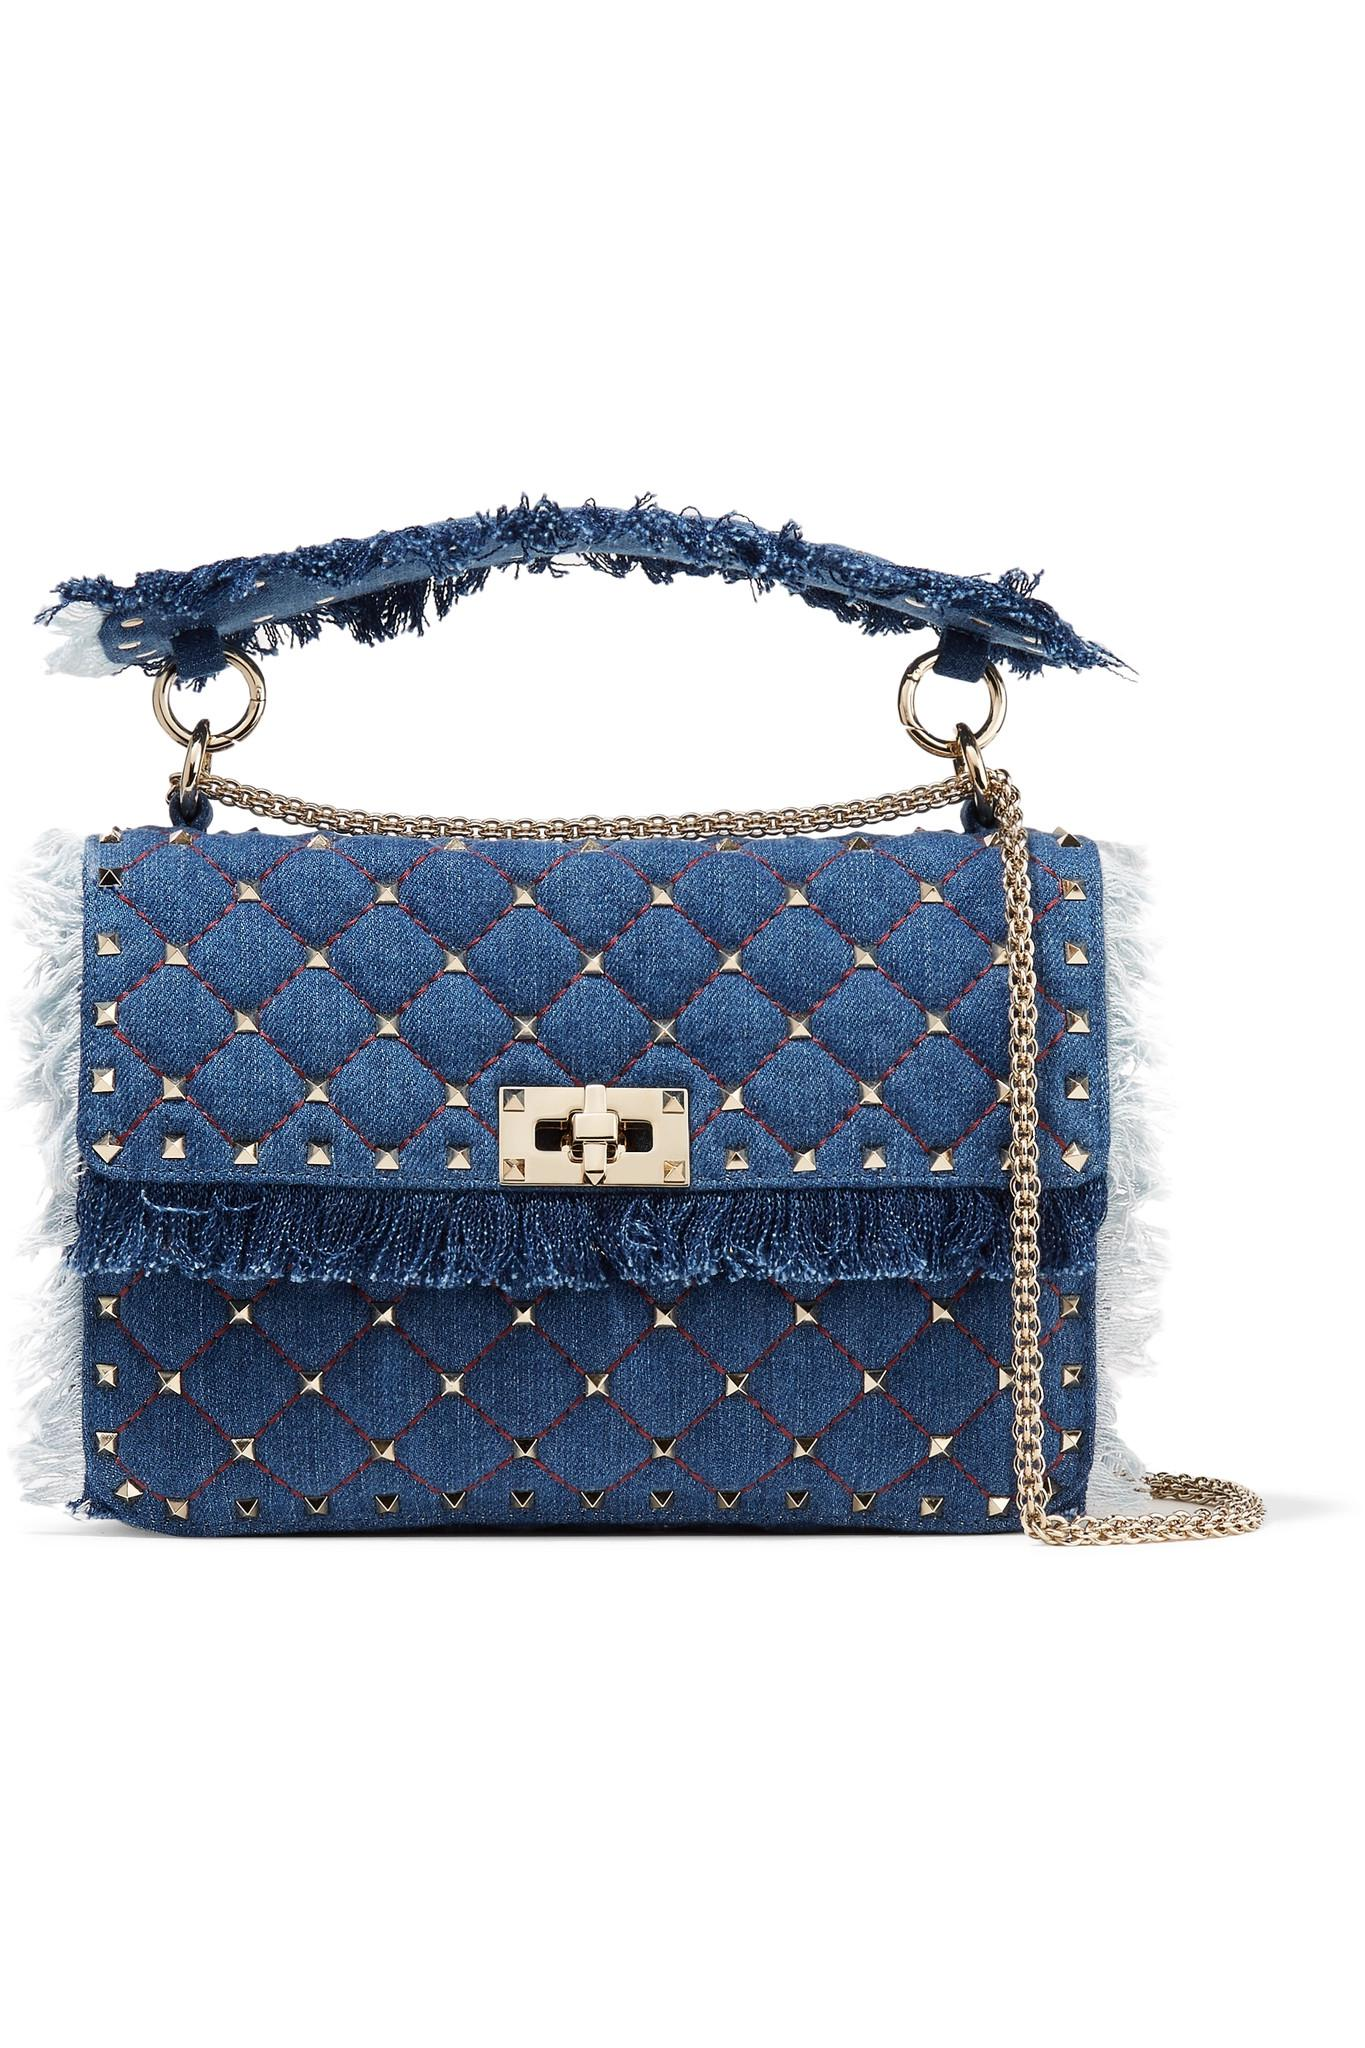 f478545f7581 Lyst - Valentino Garavani The Rockstud Spike Medium Quilted Denim ...